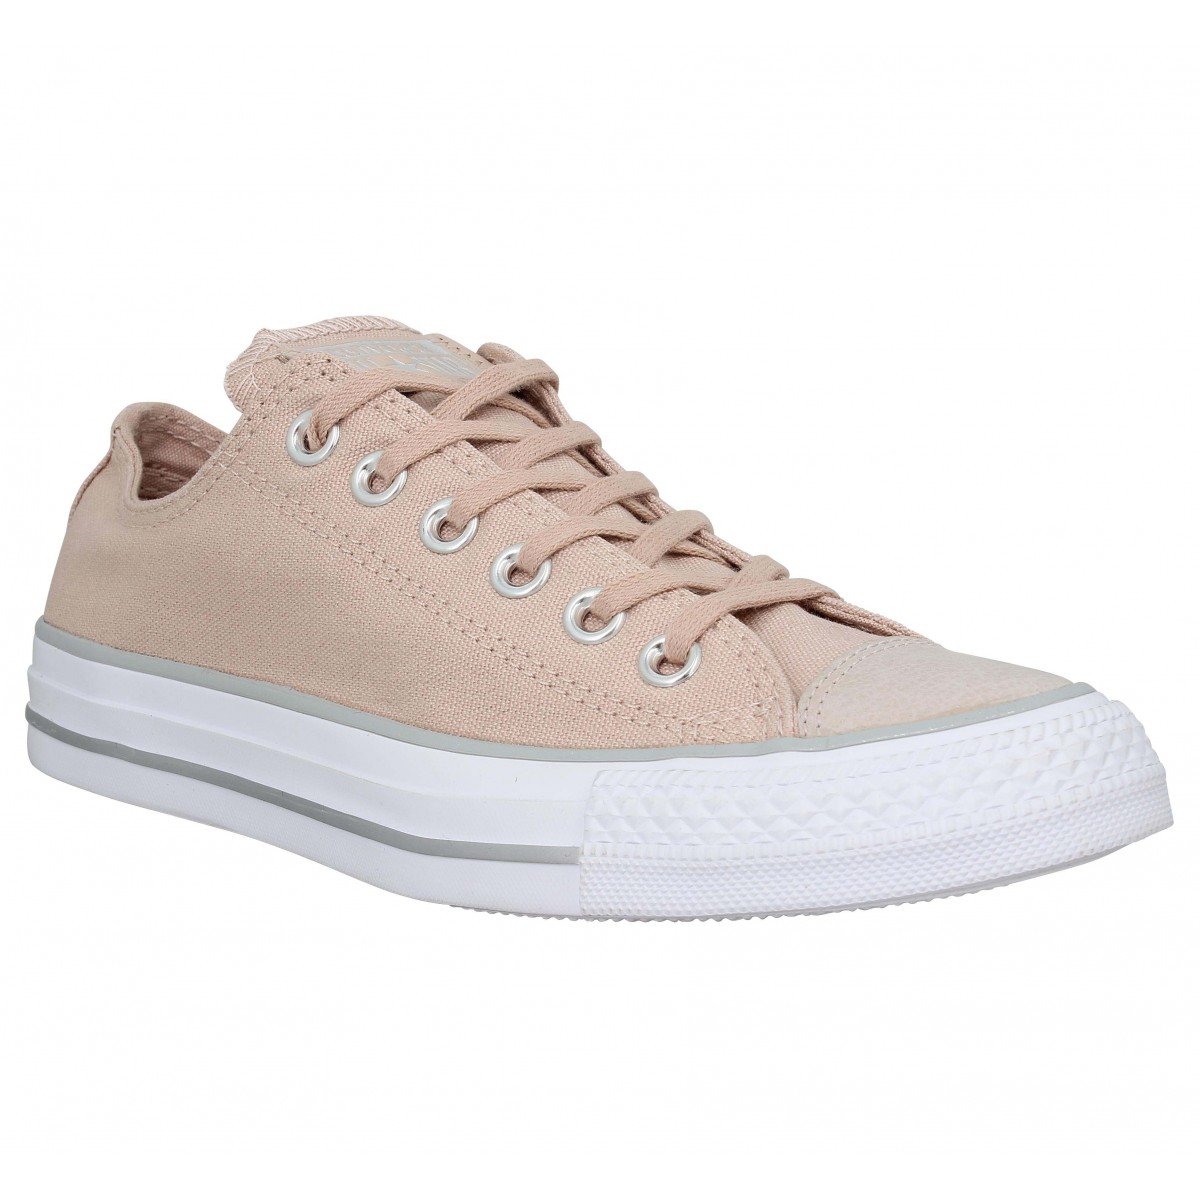 Baskets CONVERSE Chuck Taylor All Star toile Femme Particle